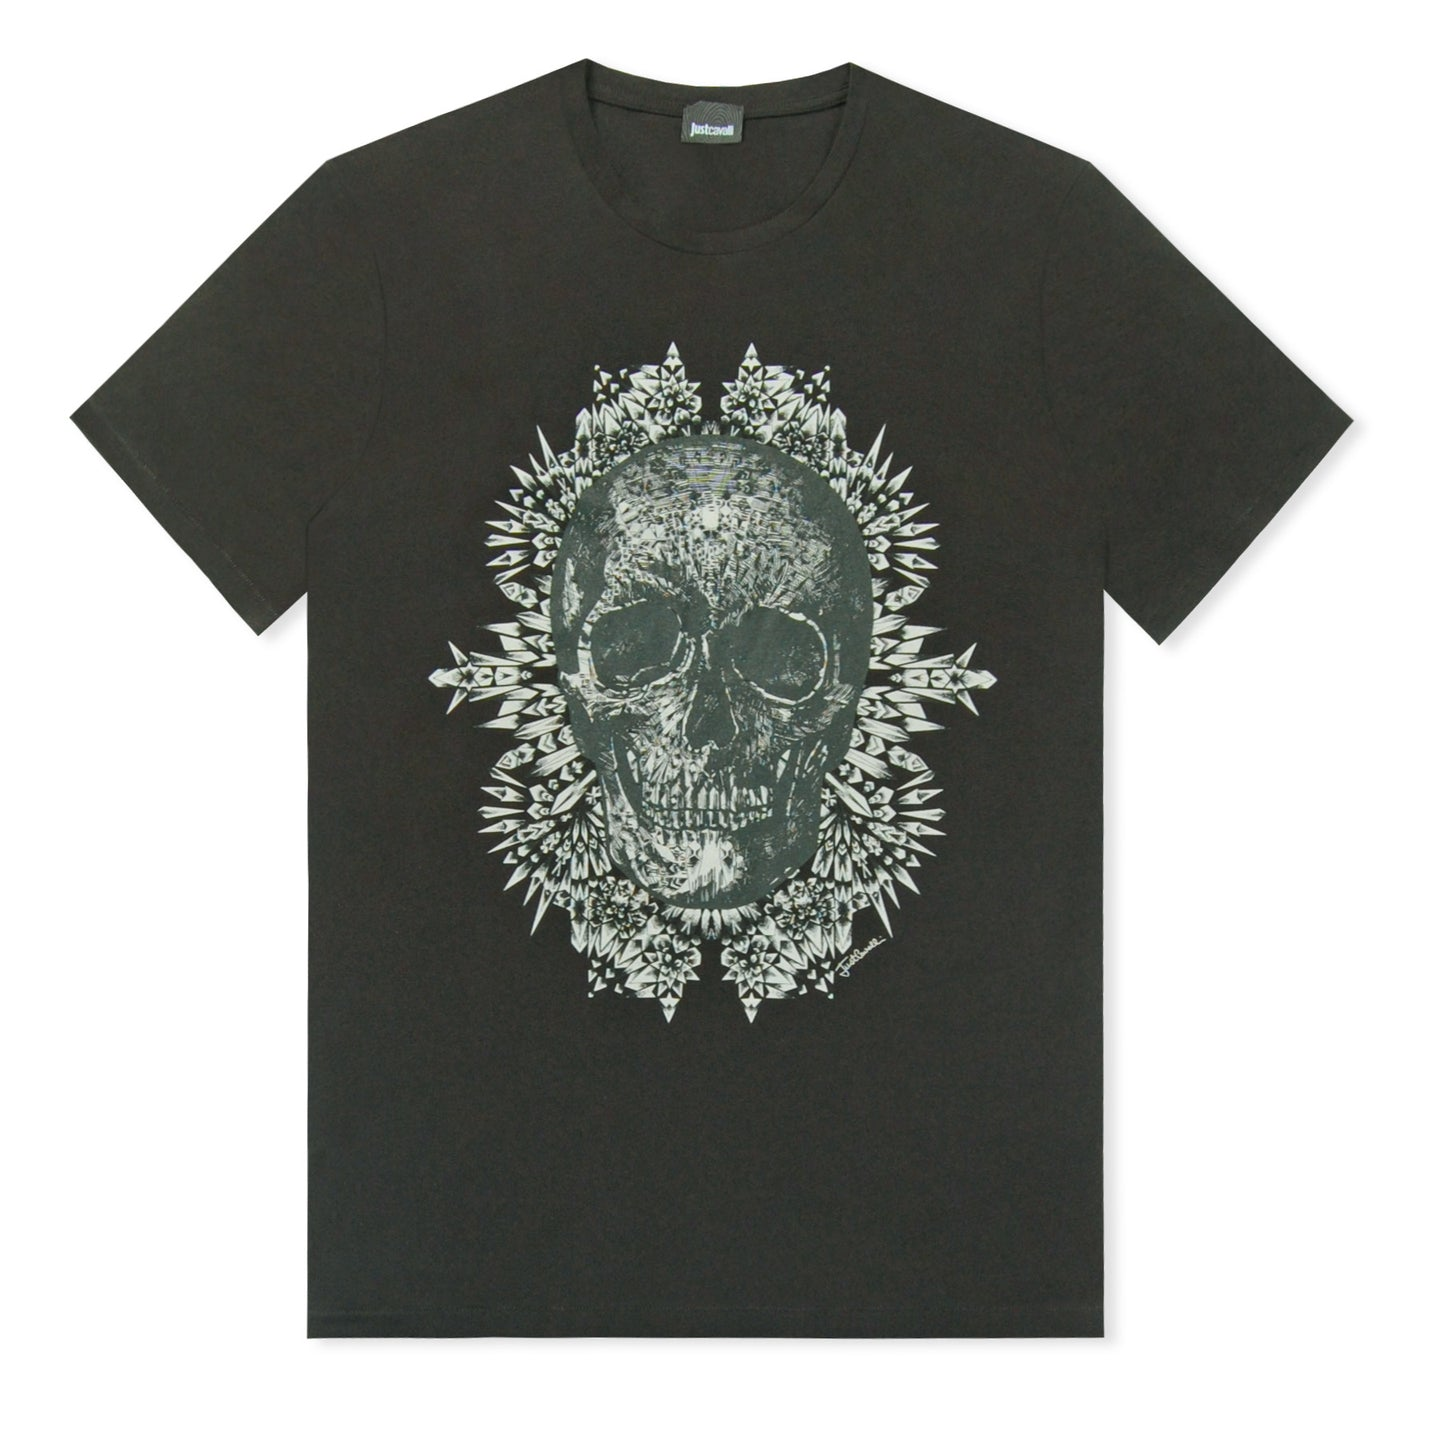 Black Just Cavalli Skull Print T-Shirt